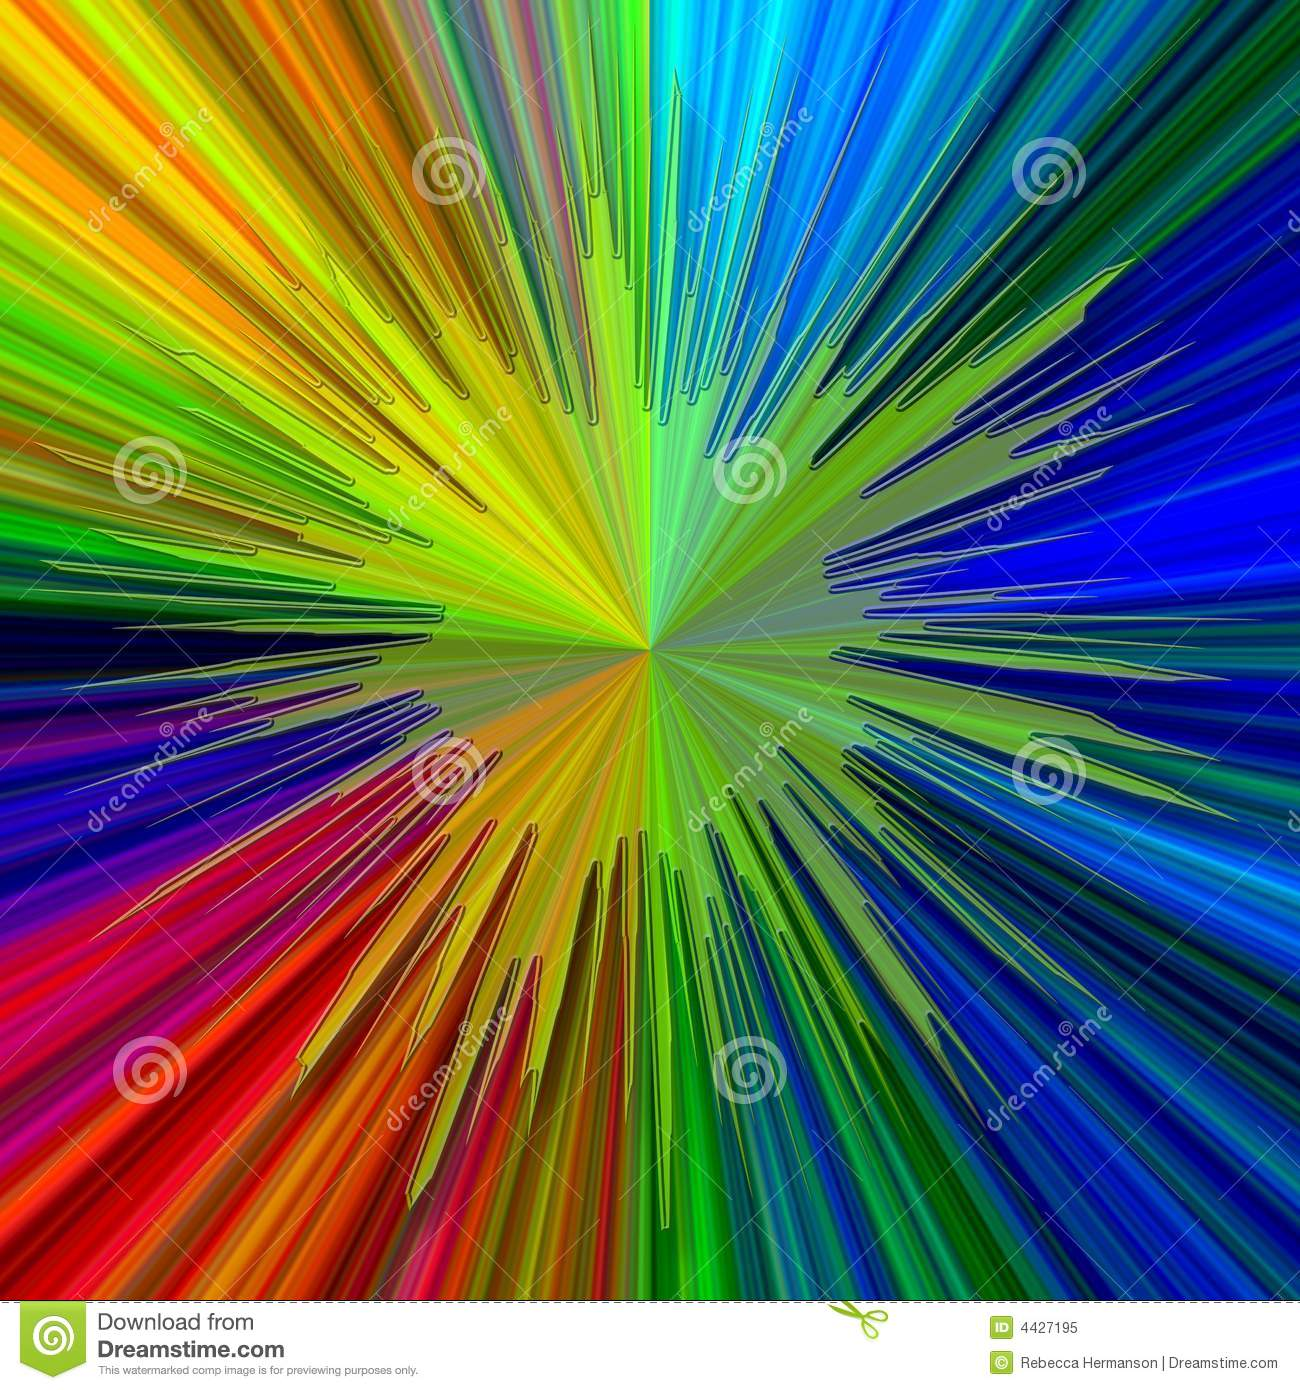 Bright Abstract Neon Background Royalty Free Stock Photo - Image ...